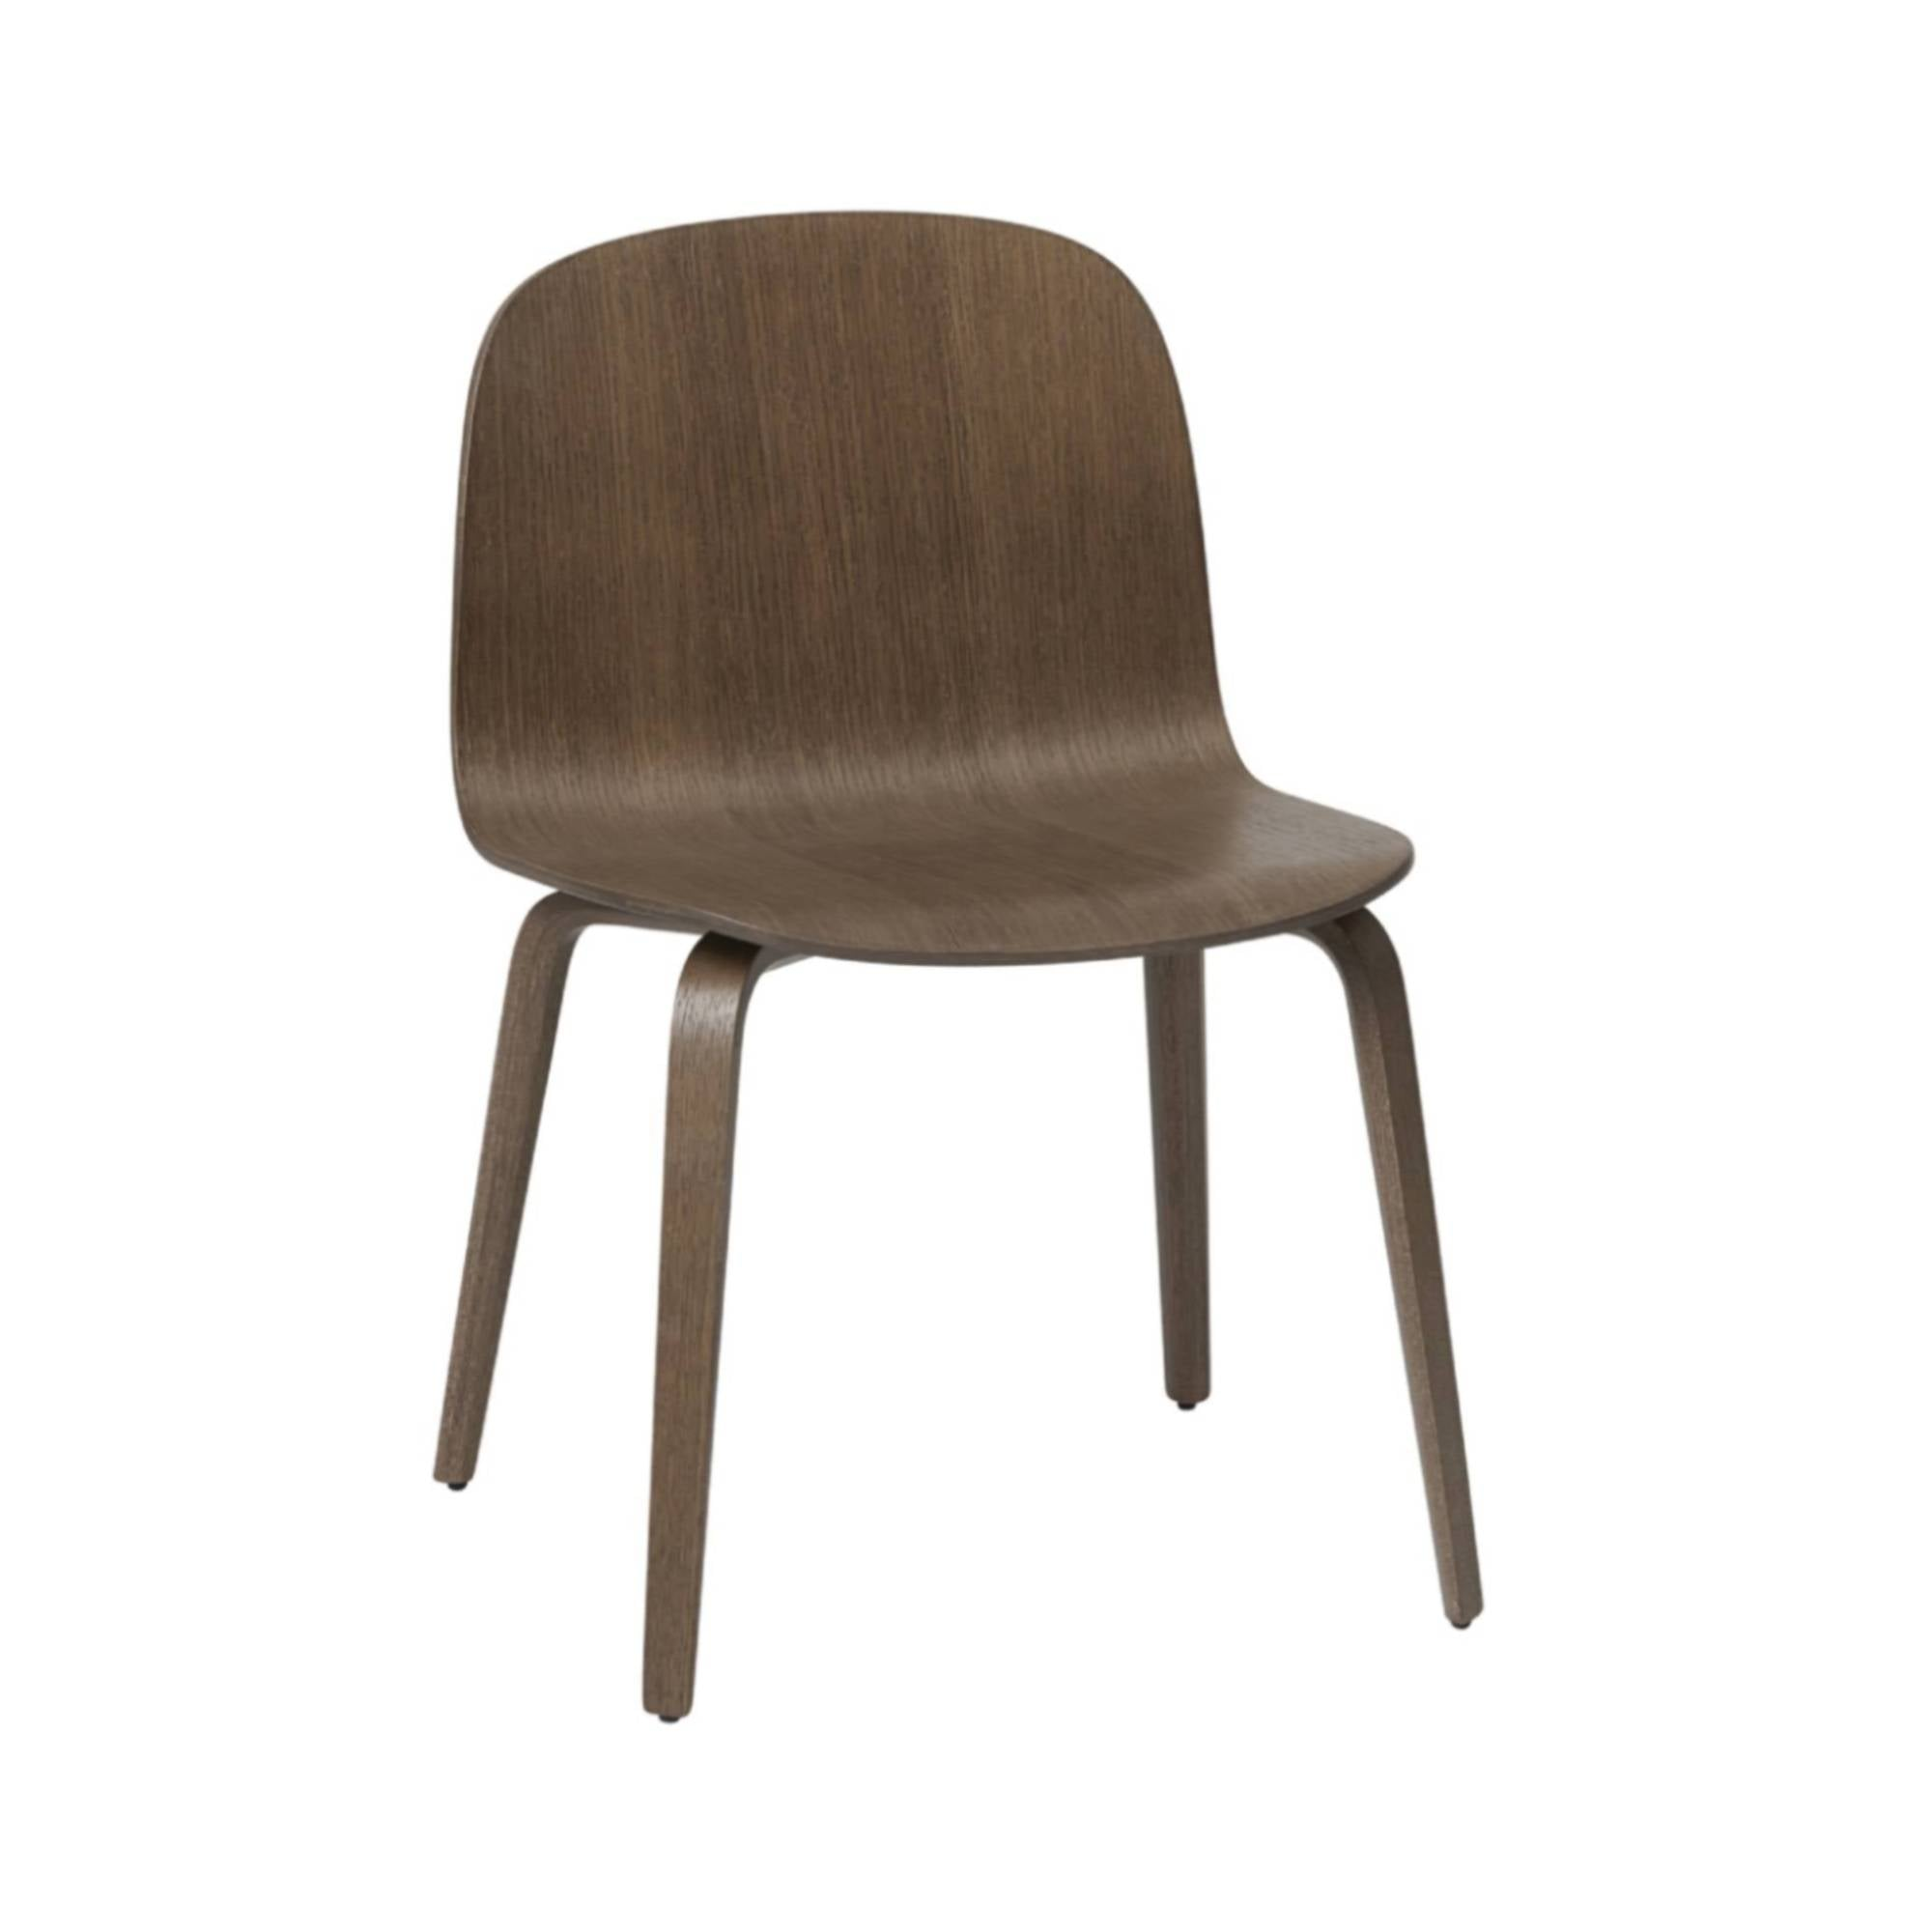 Visu Wide Chair: Wood Base: Stained Dark Brown